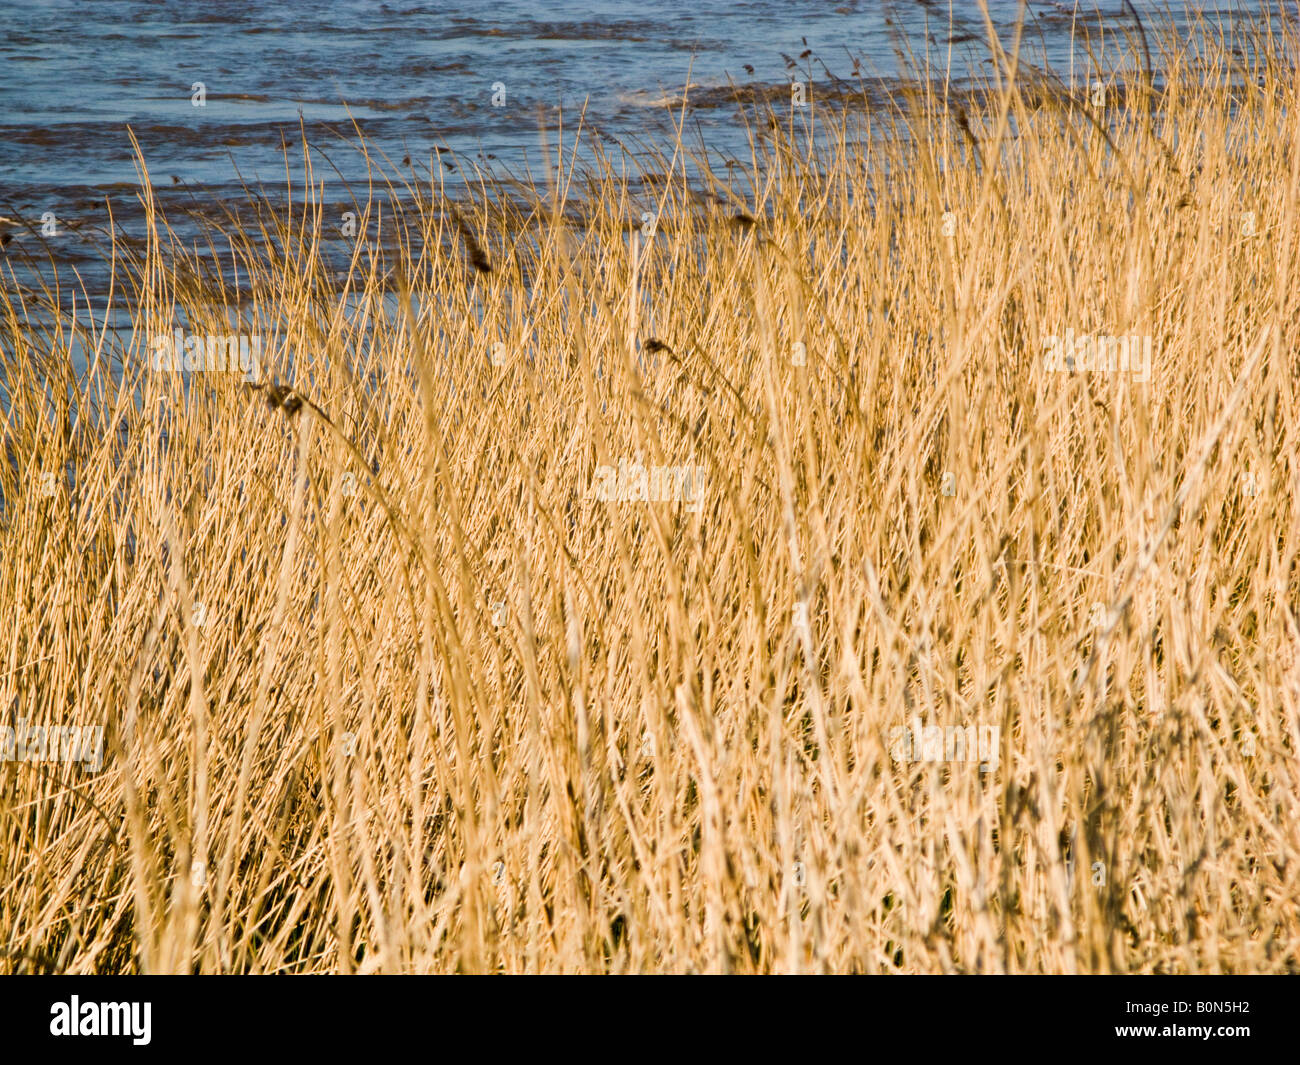 Reeds in early evening sunlight on a river bank UK - Stock Image